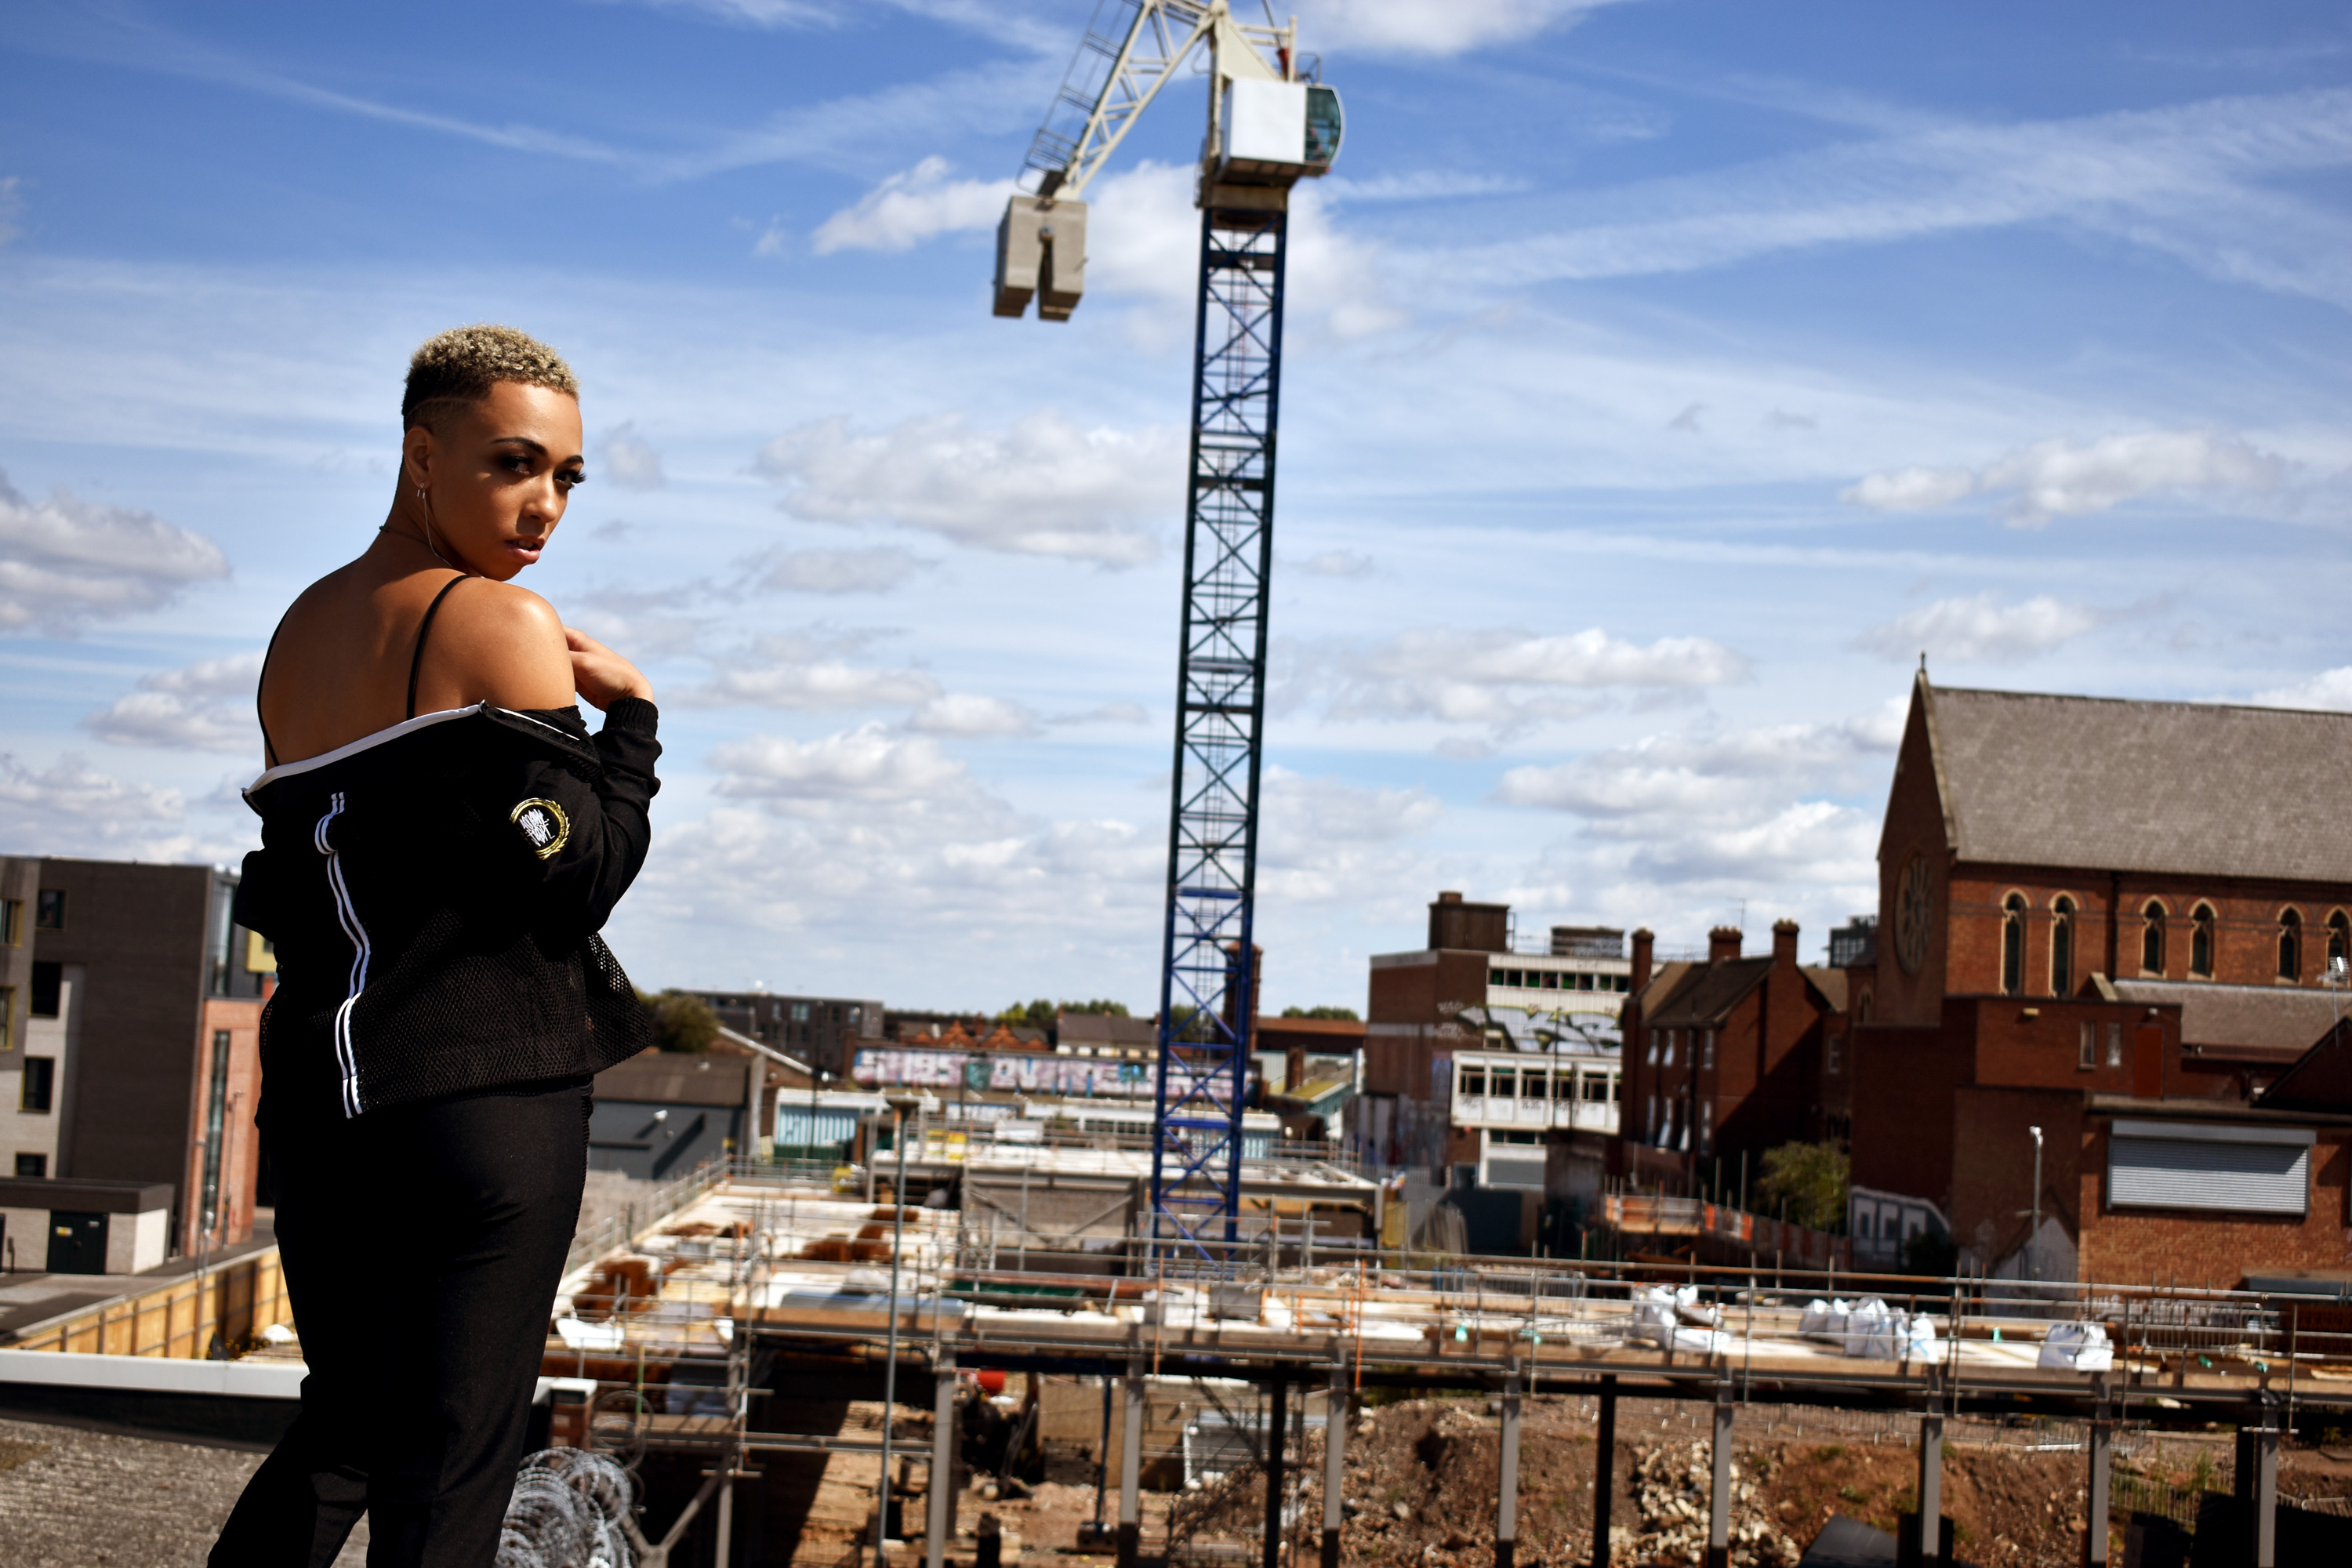 Mesh KnowHope Meshtop taken on the roof of The Edge Cheapside Birmingham